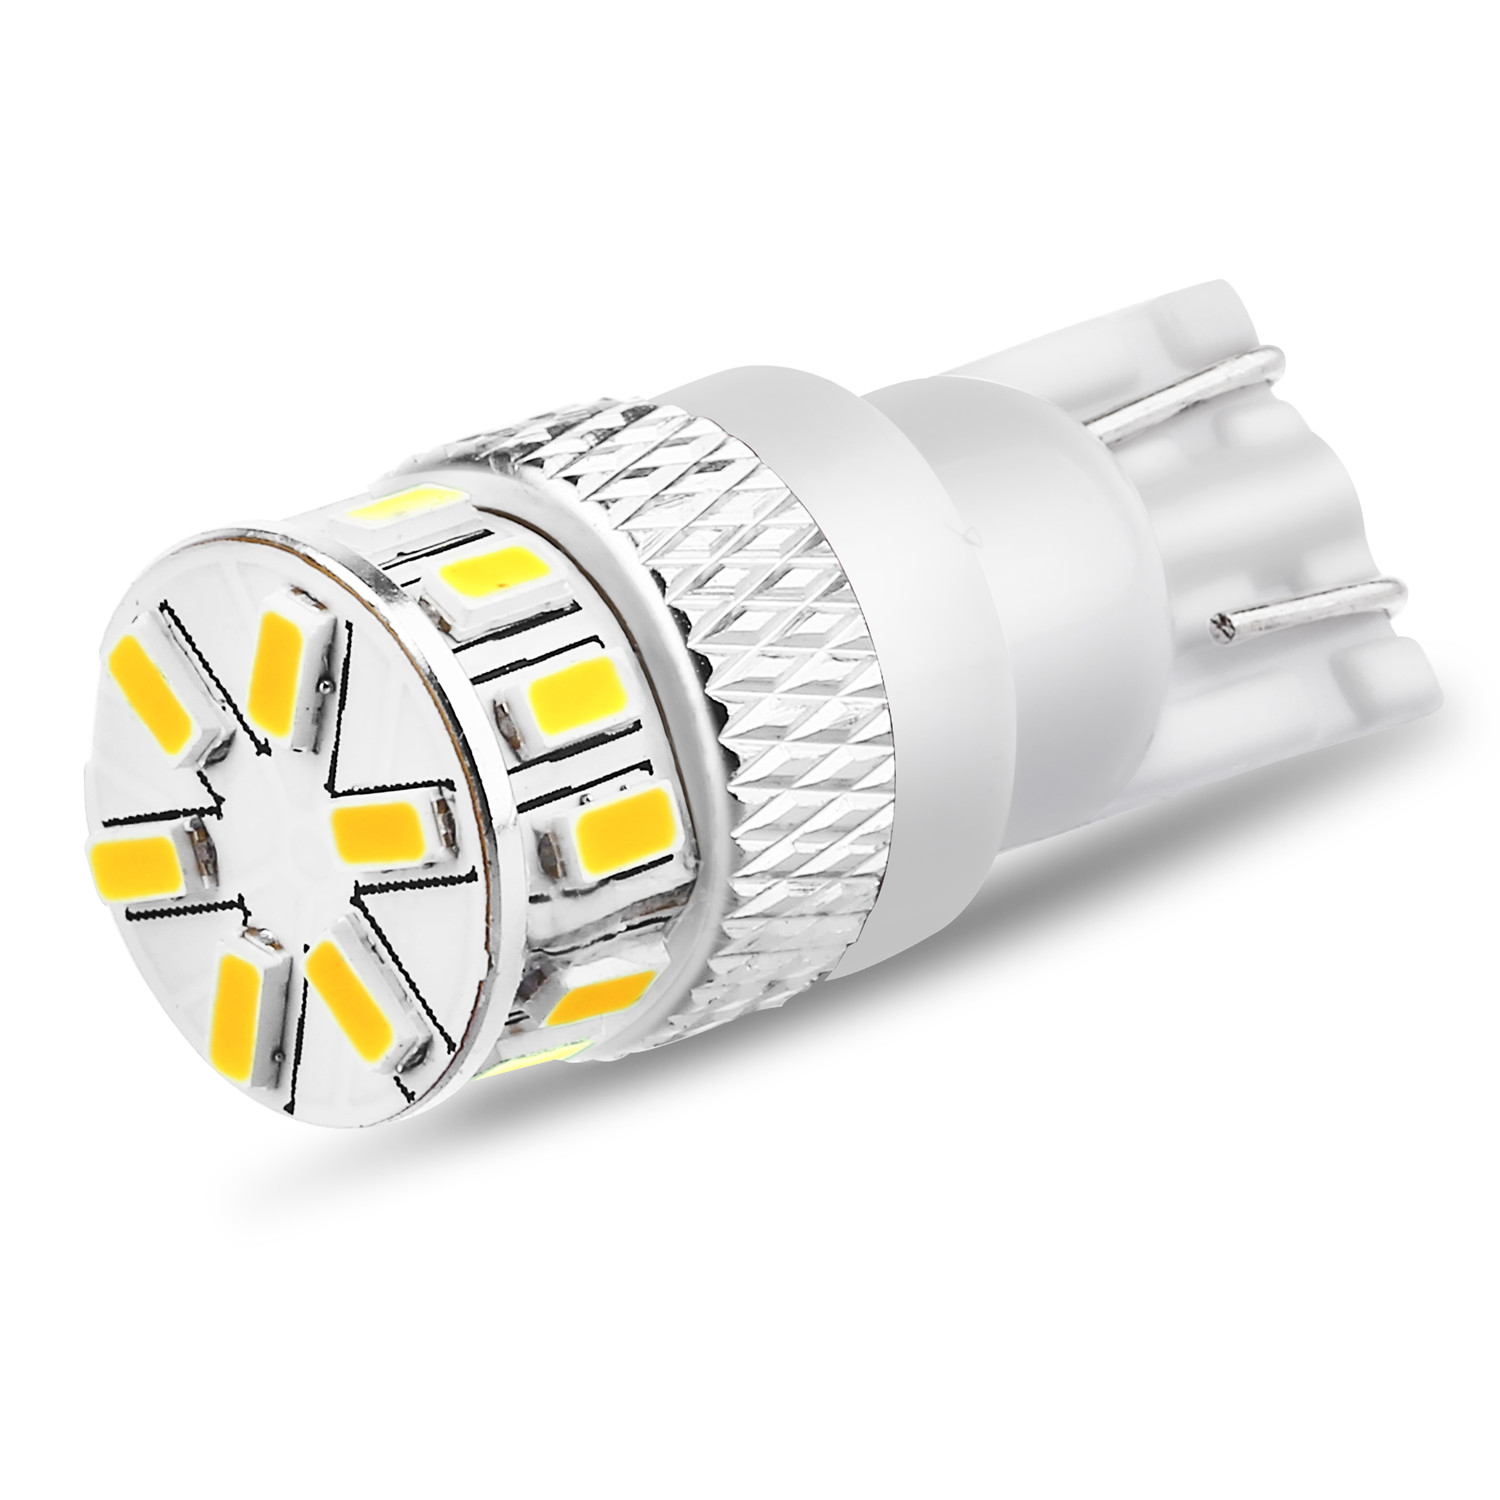 2018 Honda Accord LED Dome Light Bulb 175 White 12V Replacement